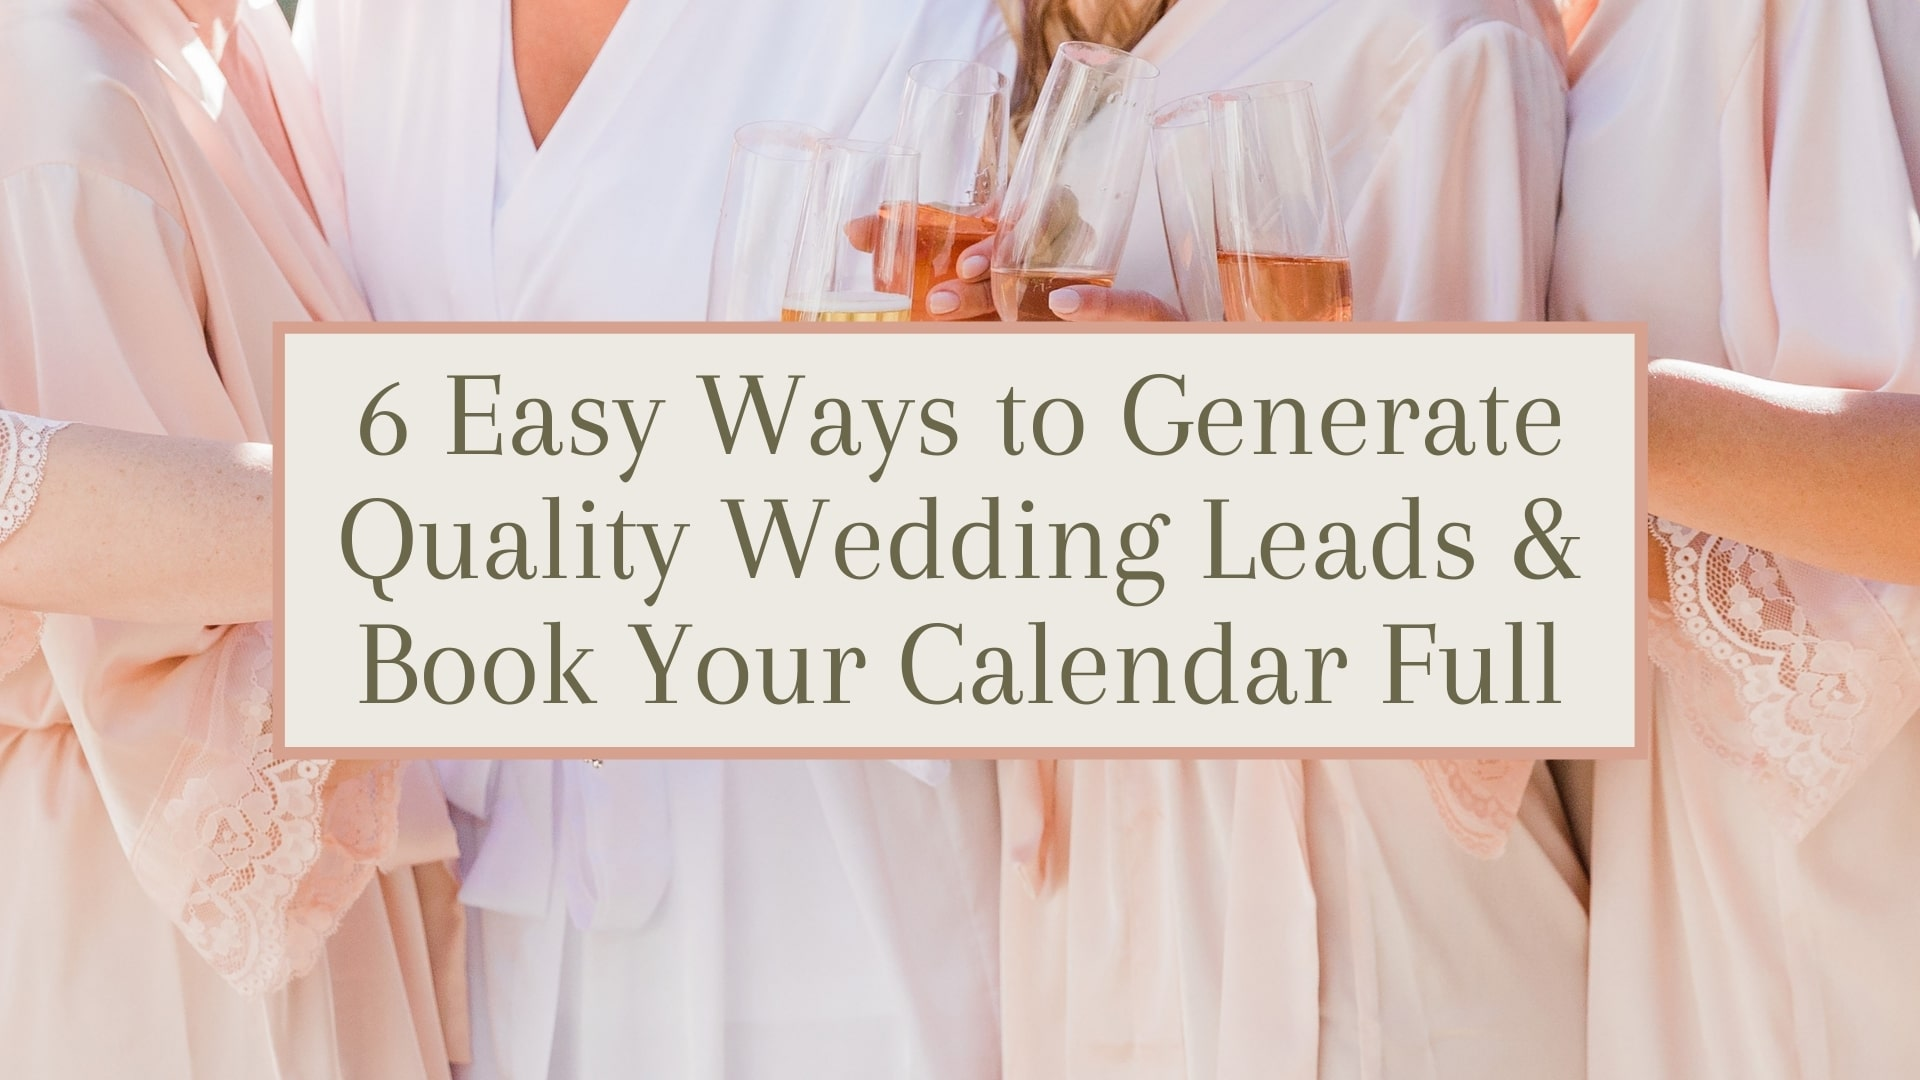 6 Easy Ways to Generate Quality Wedding Leads & Book Your Calendar Full